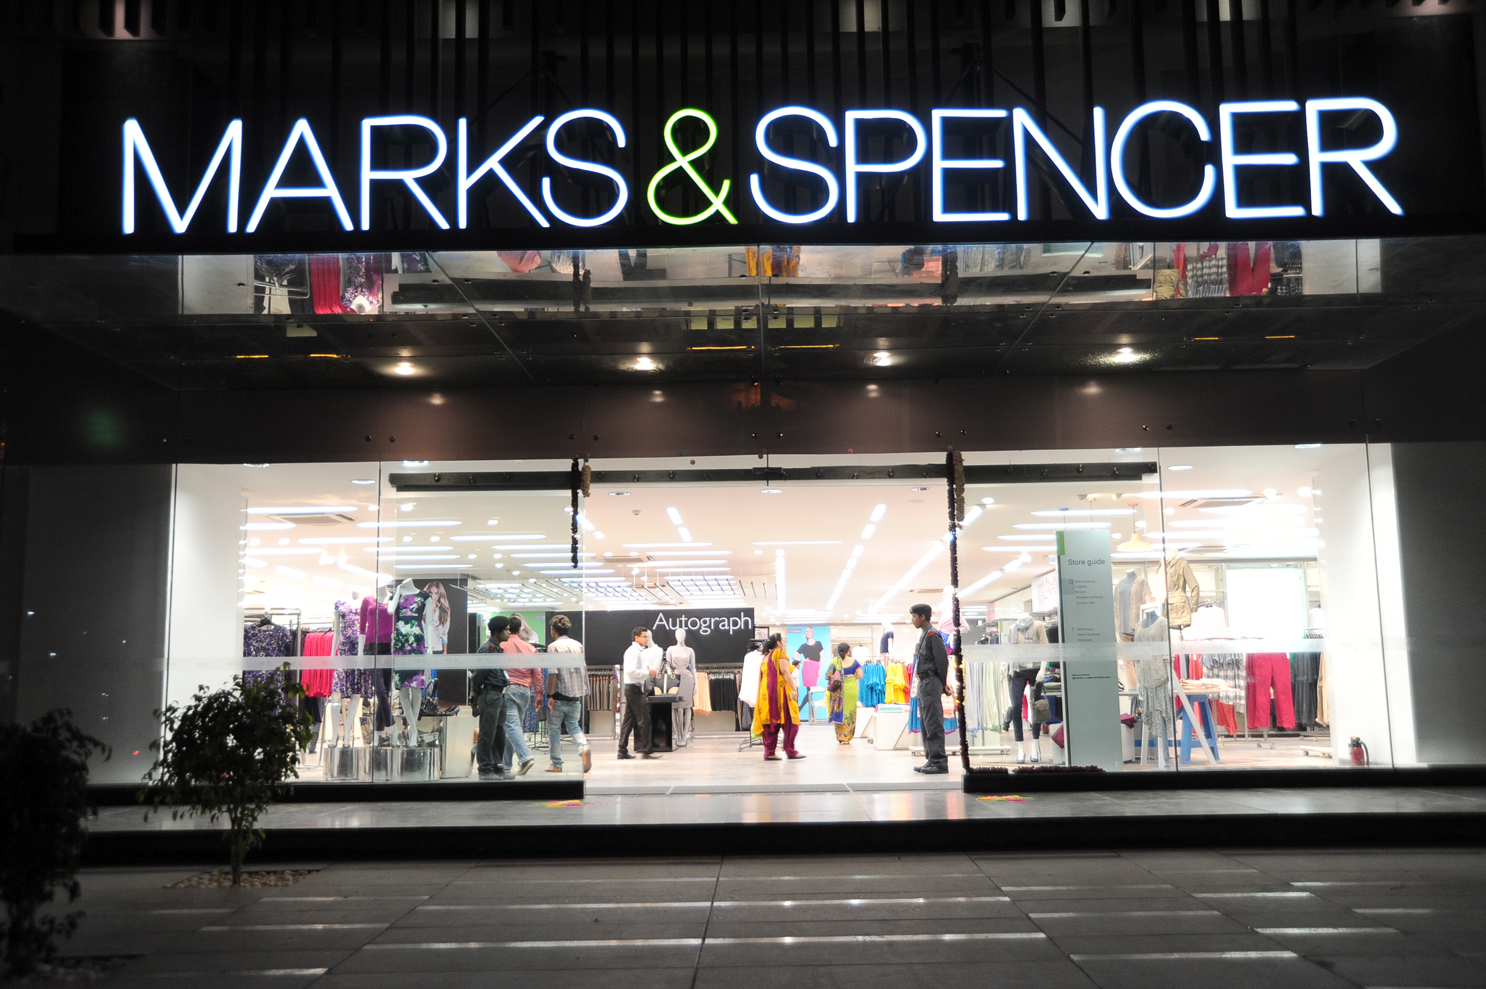 marks and spencer marketing mix for one segment